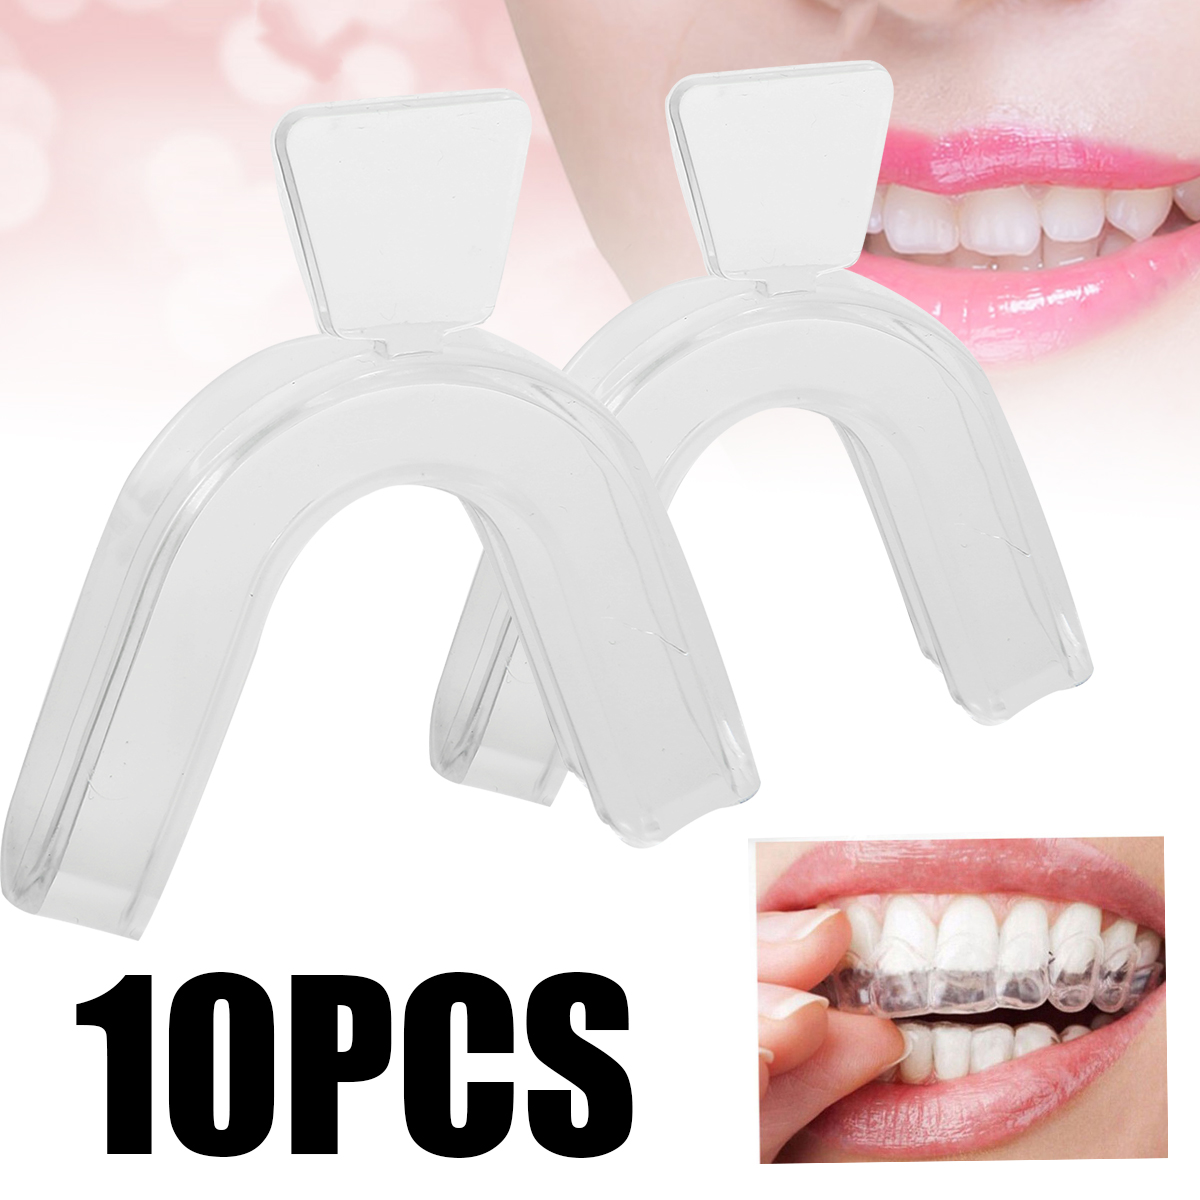 10pcs Food Grade Silicone Teeth Whitening Trays Dental Mouthguard Splint White Teeth Mouth Trays Guard Care Oral Hygiene